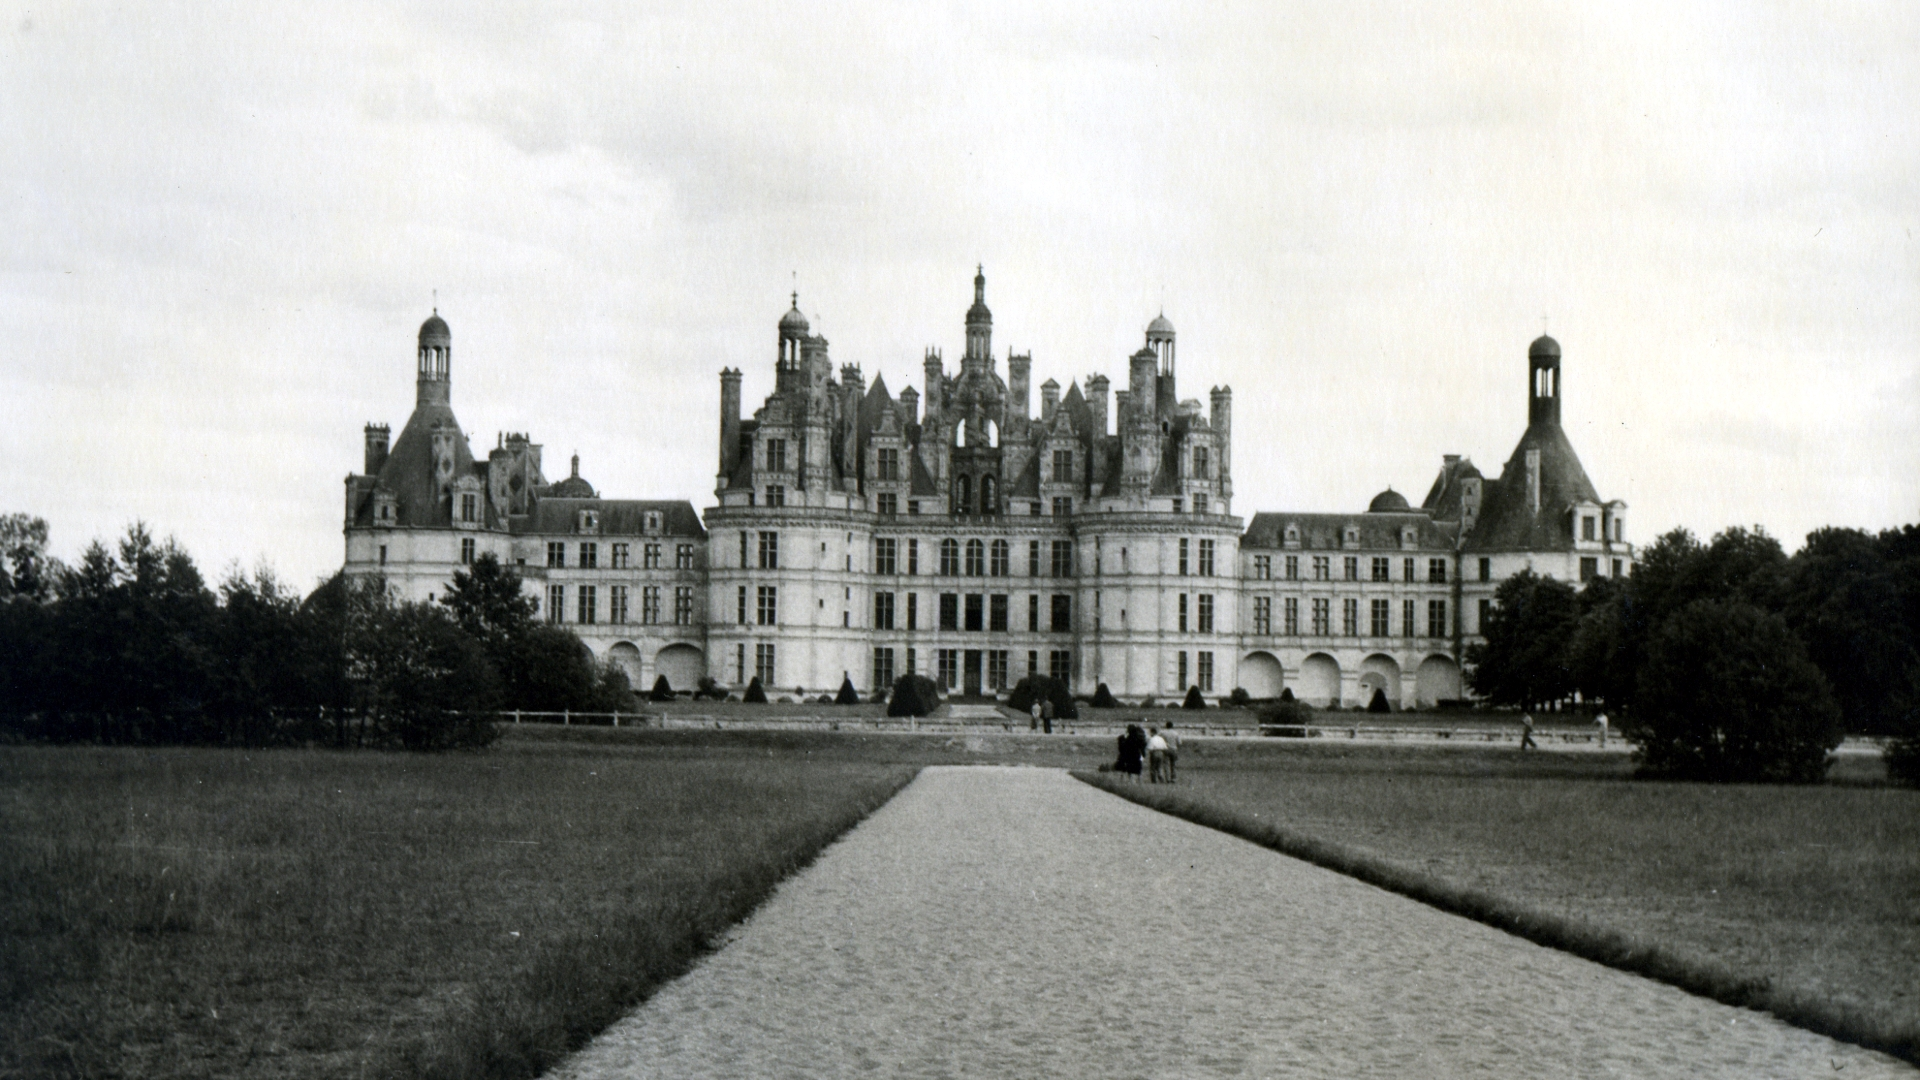 Architecture Photography Wallpaper architecture chambord black and white castle france photography